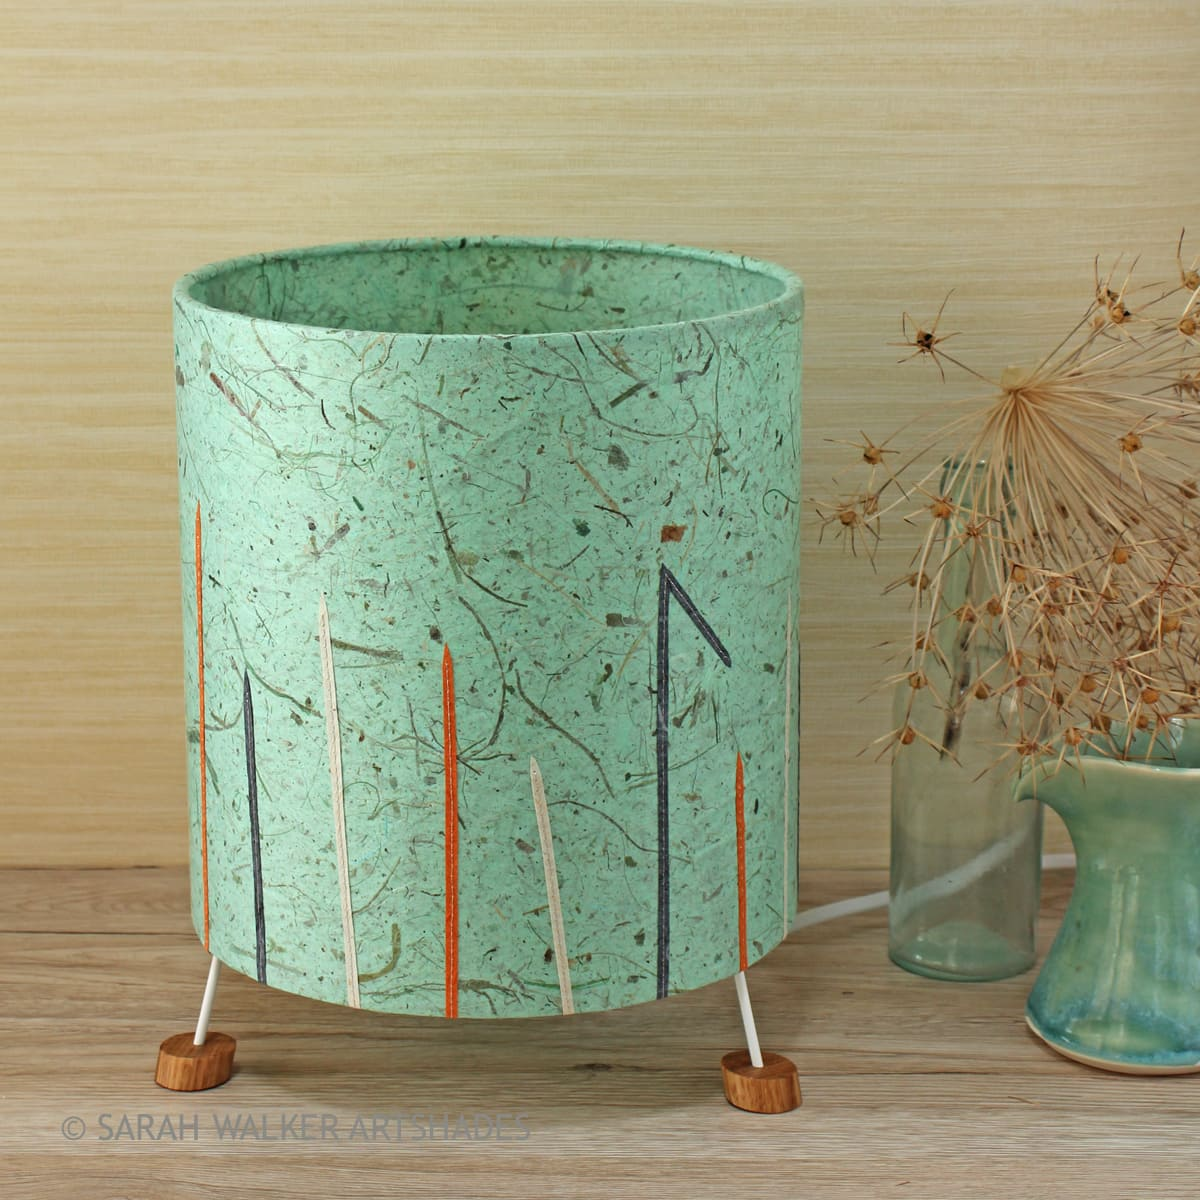 Drum Shade Table Lamps Sarah Walker Artshades